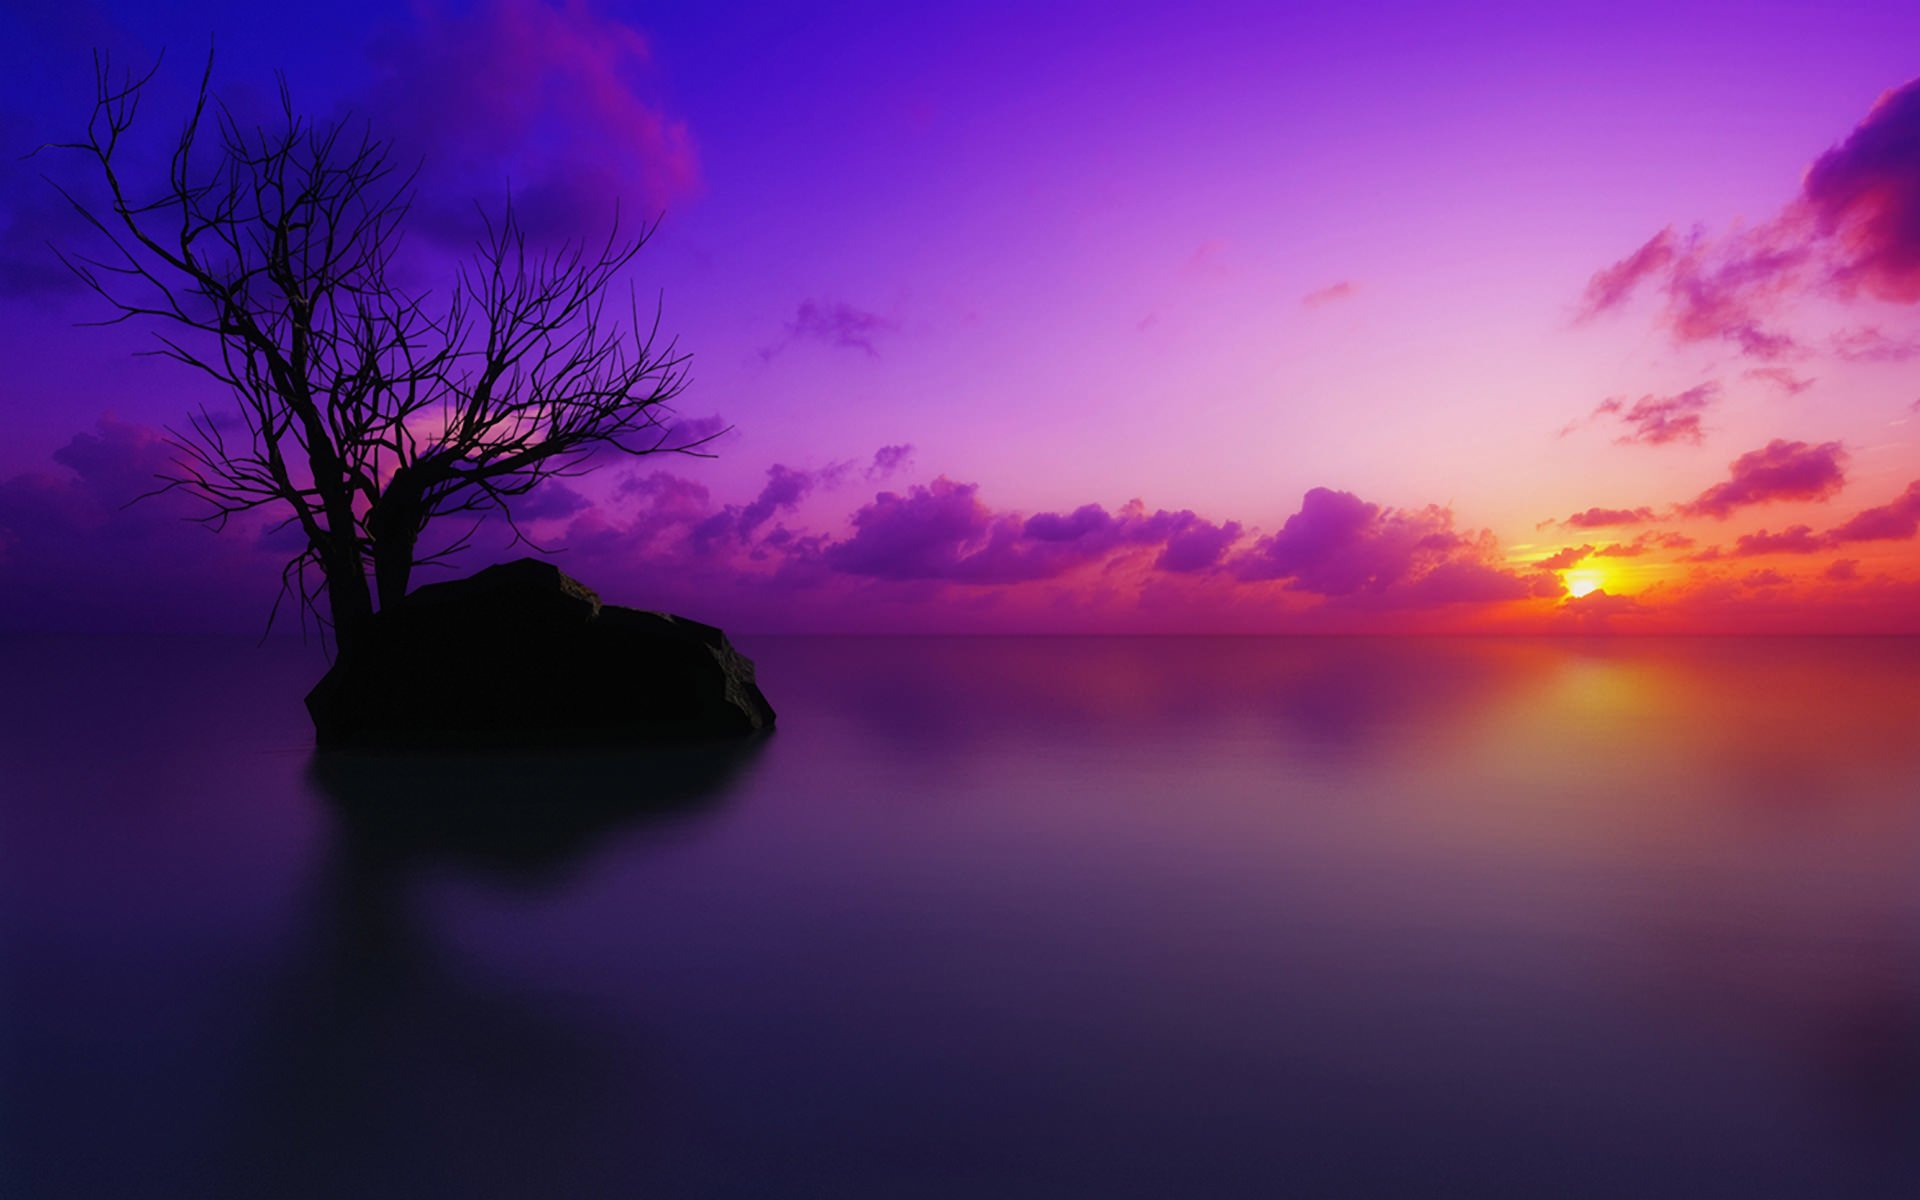 purple-sunset-wallpaper-1920x1200-1006112.jpg